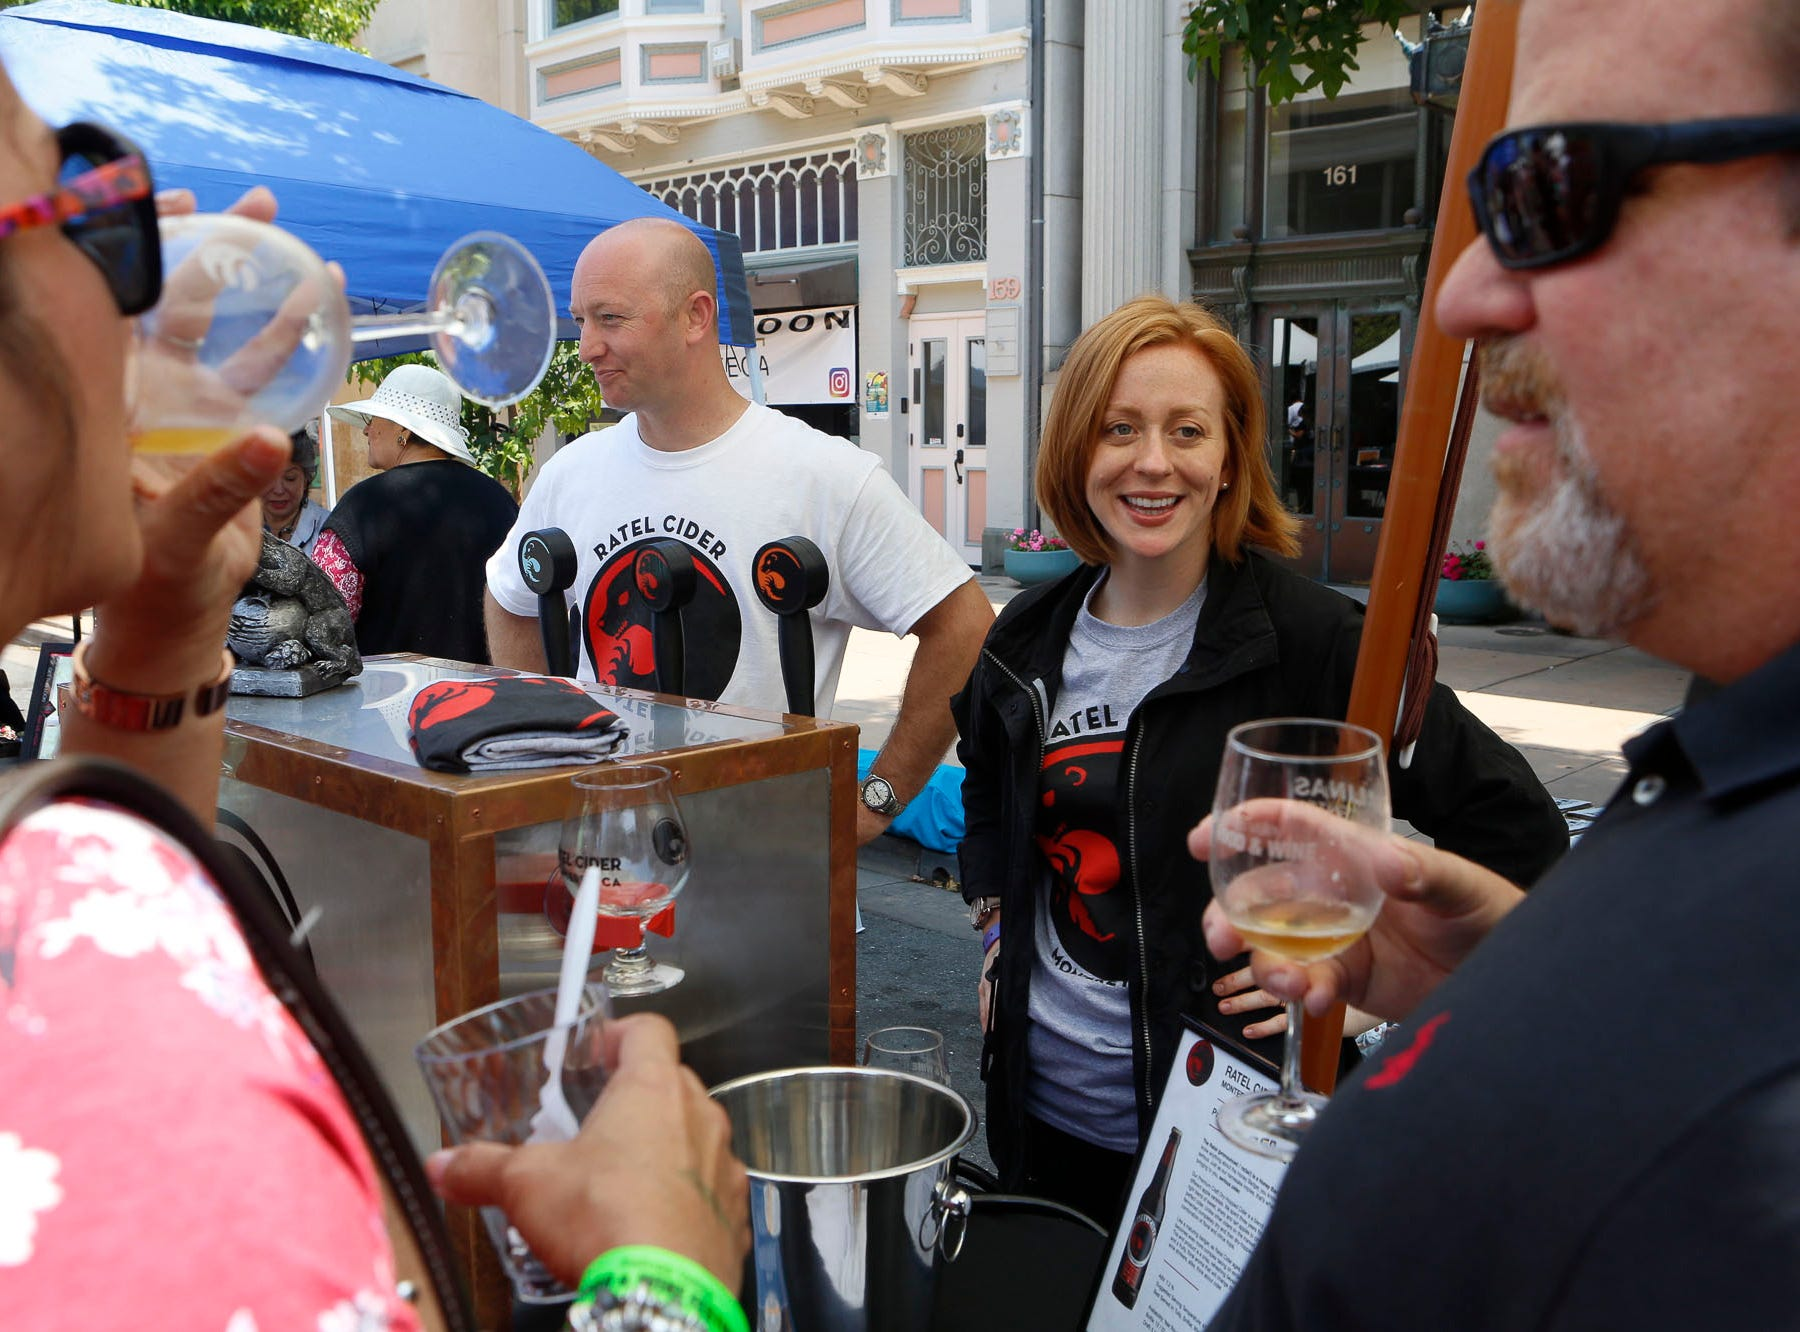 Vintners chat with attendees sampling wine during the 2018 Salinas Valley Food and Wine Festival which takes place on Main Street in Old Town Salinas on Saturday, August 11, 2018.